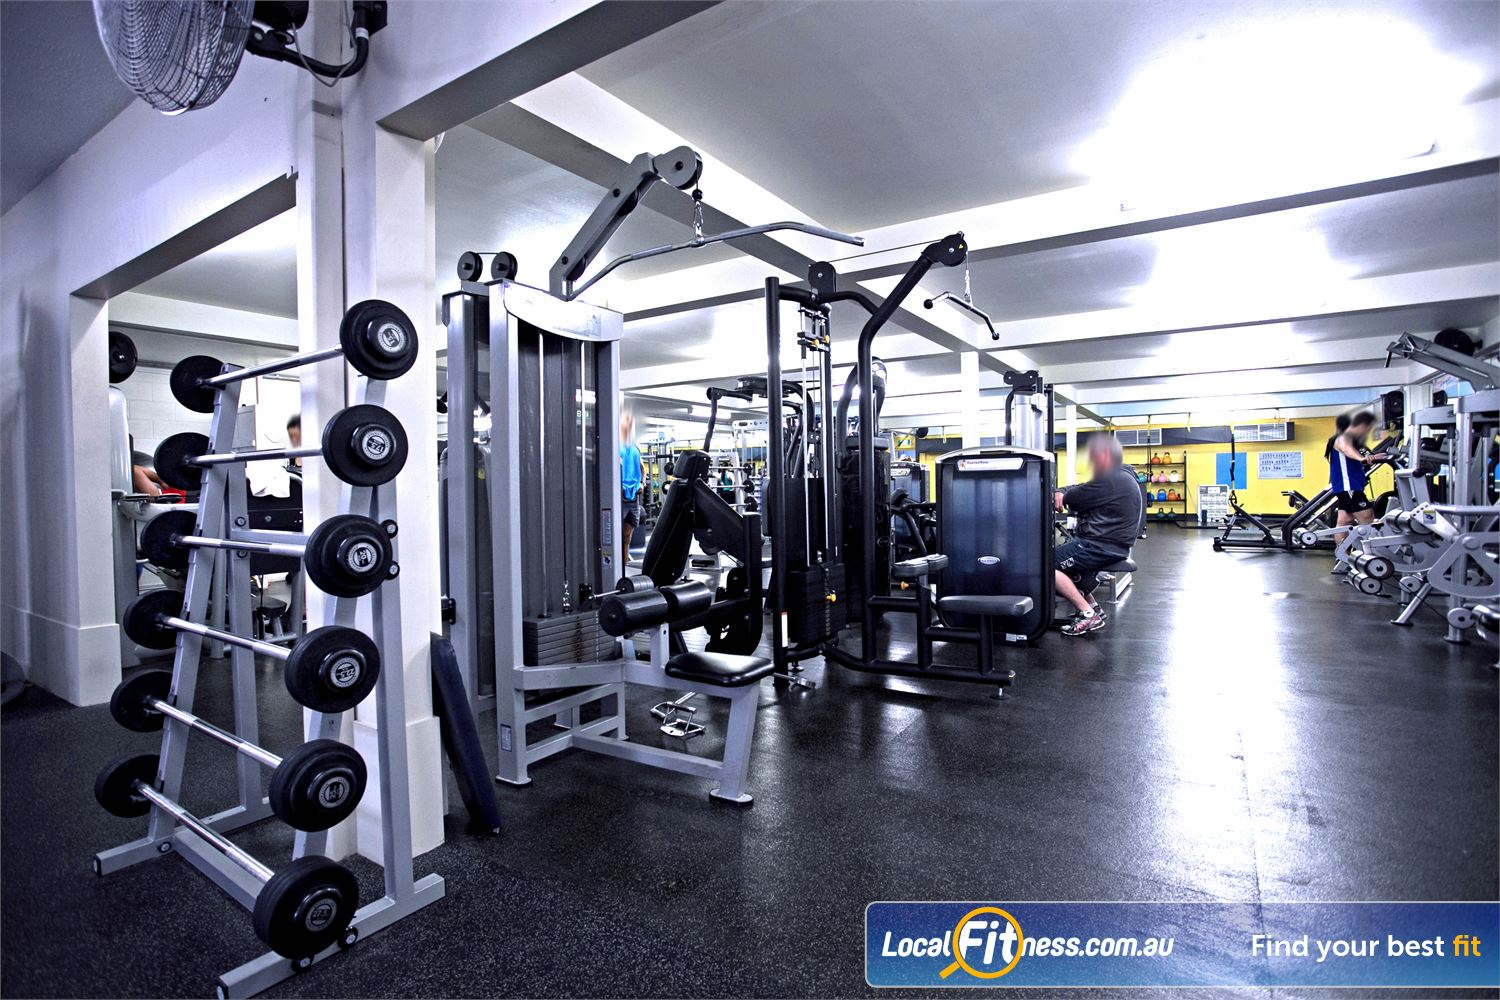 Goodlife Health Clubs Mitcham Kingswood The fully equipped Kingswood free-weights gym area.